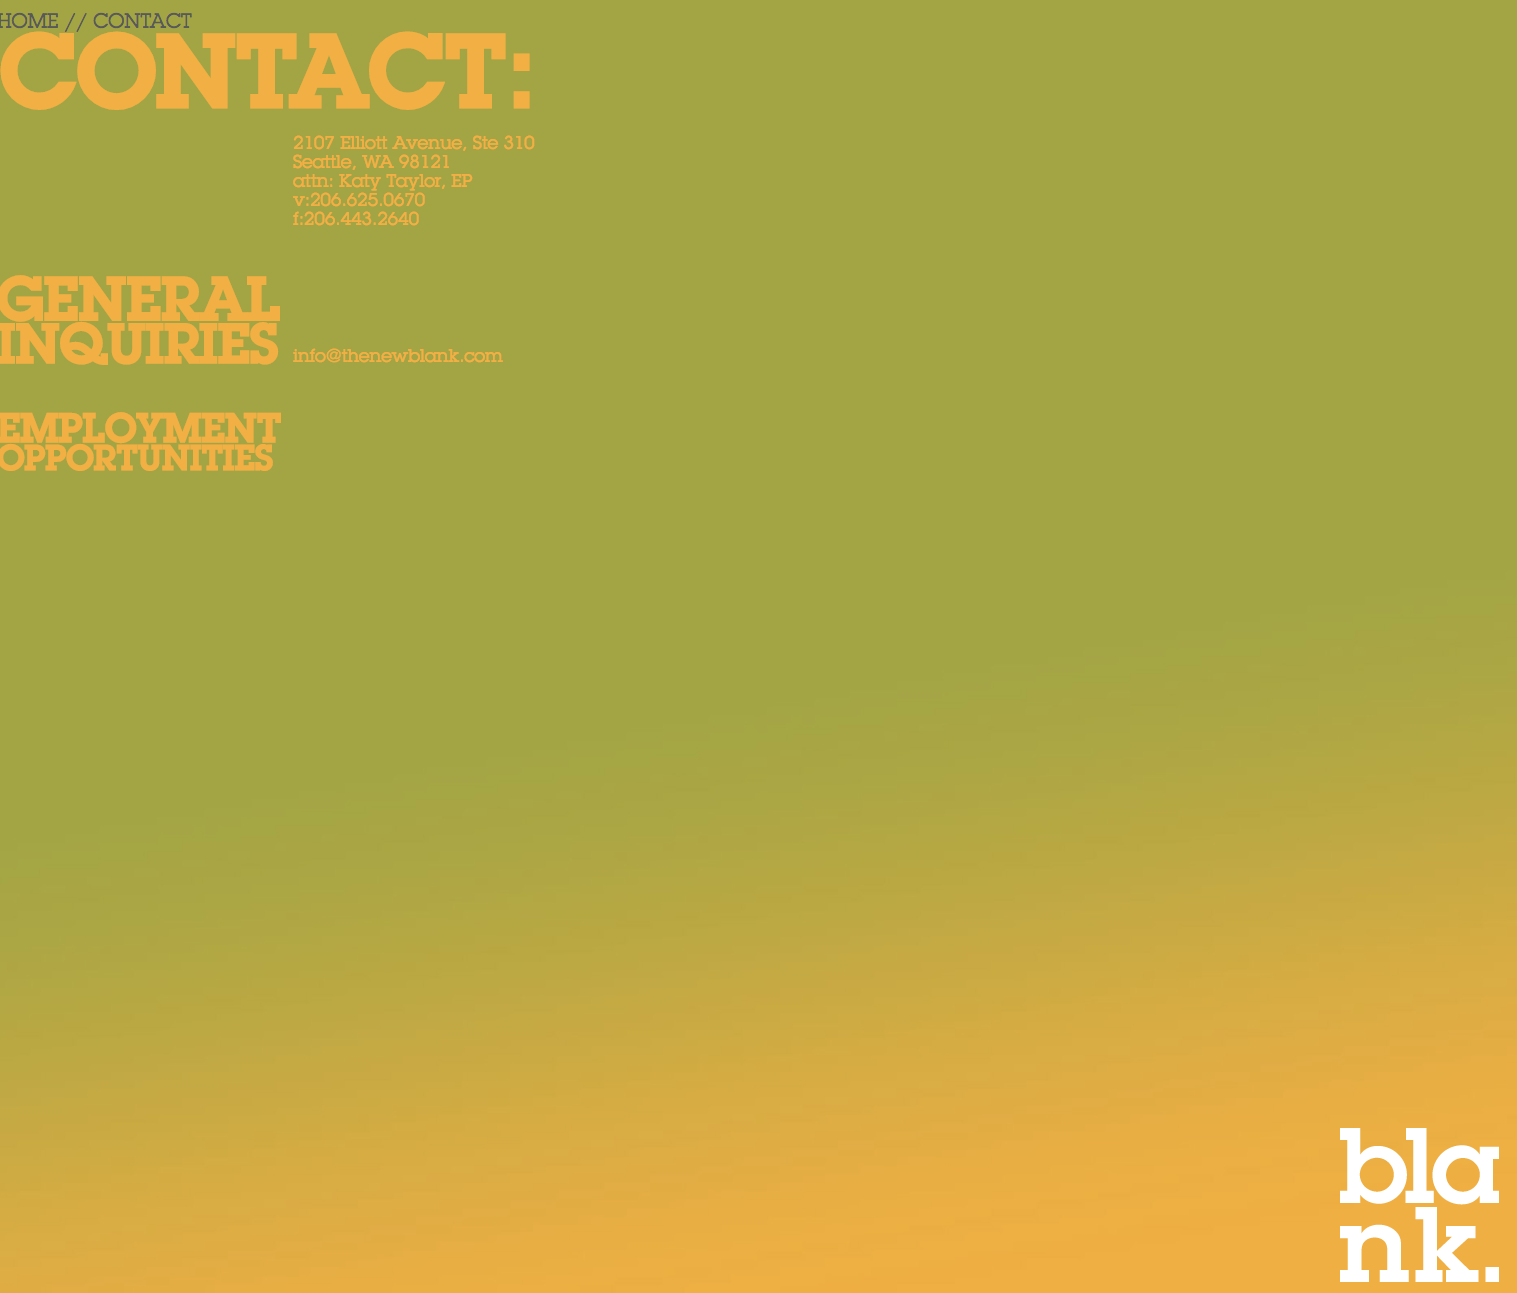 TNB_Old_Contact